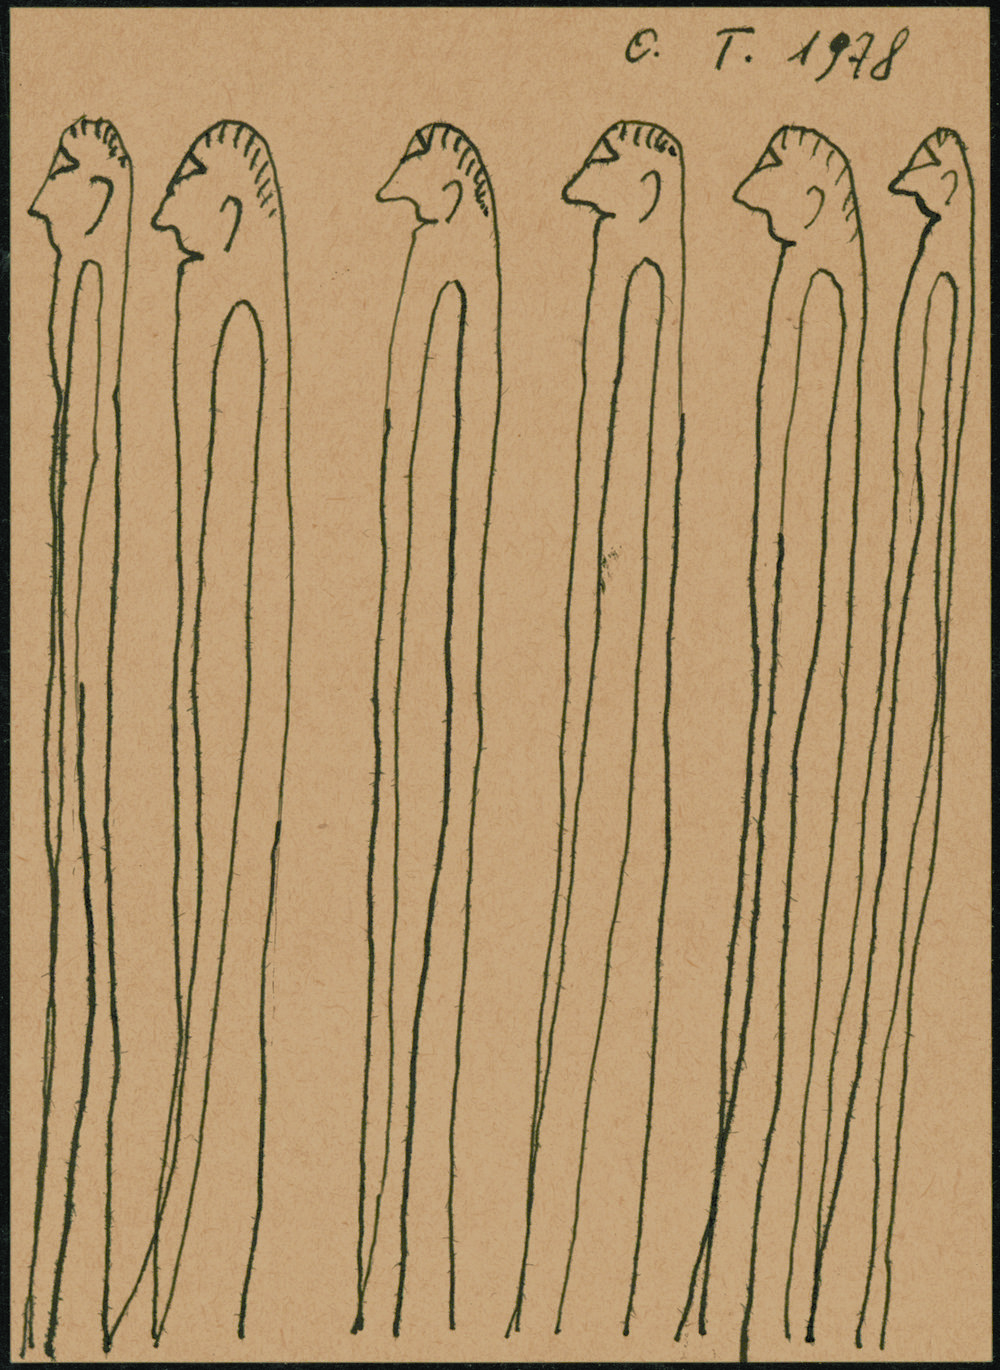 Oswald Tschirtner (Austrian, 1920-2007).  Six standing figures facing left , 1978. Ink on paper, 5 ¾ x 4 1/8 in. Intuit: The Center of Intuitive and Outsider Art, gift of John M. MacGregor in honor of Robert A. Roth, 2004.7.5